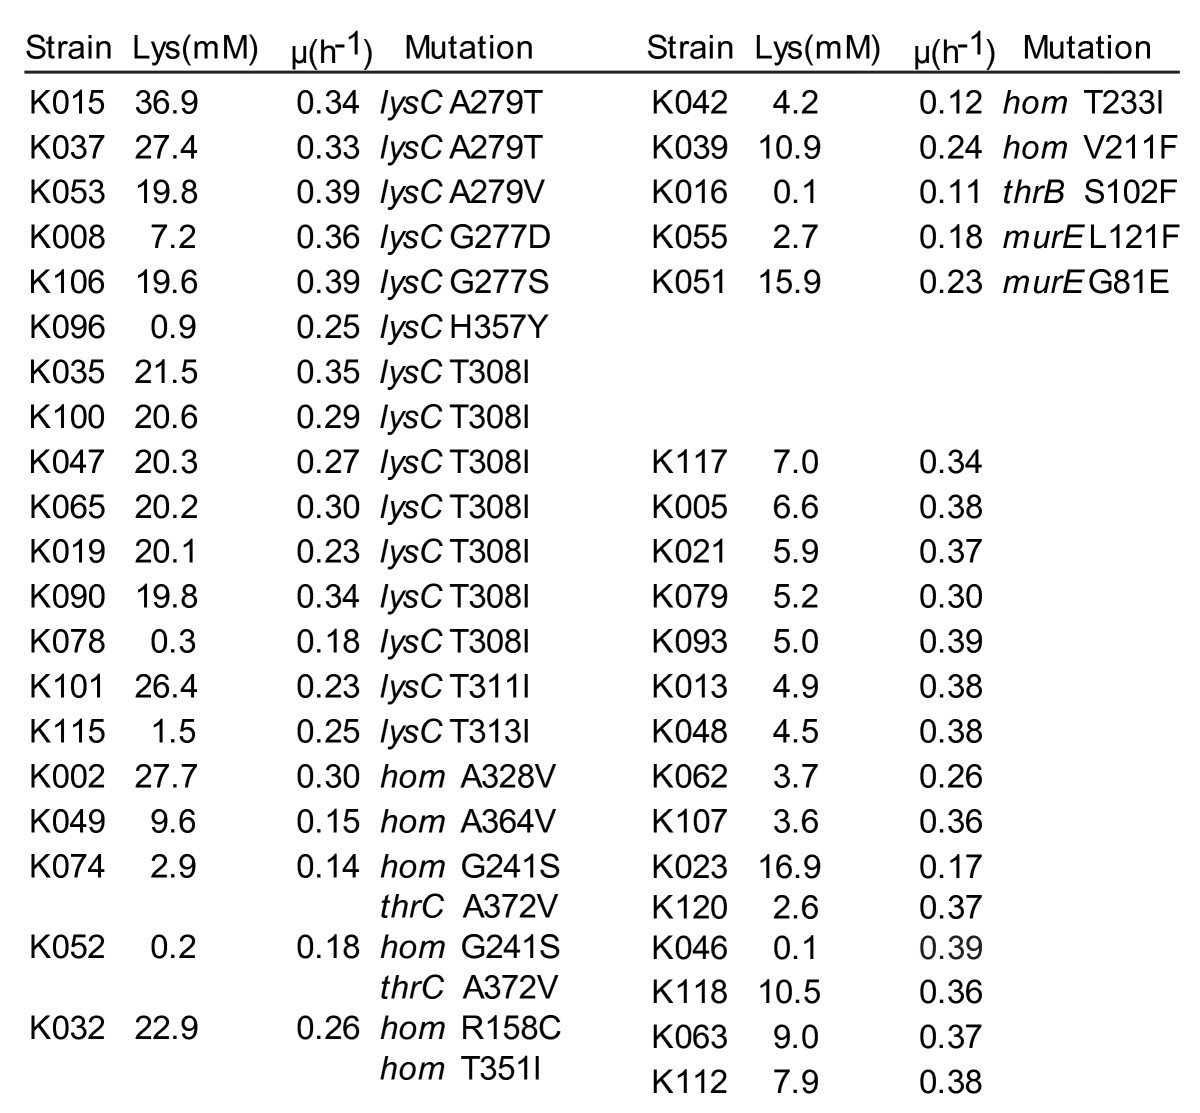 https://static-content.springer.com/image/art%3A10.1186%2Fgb-2012-13-5-r40/MediaObjects/13059_2012_Article_2879_Fig4_HTML.jpg